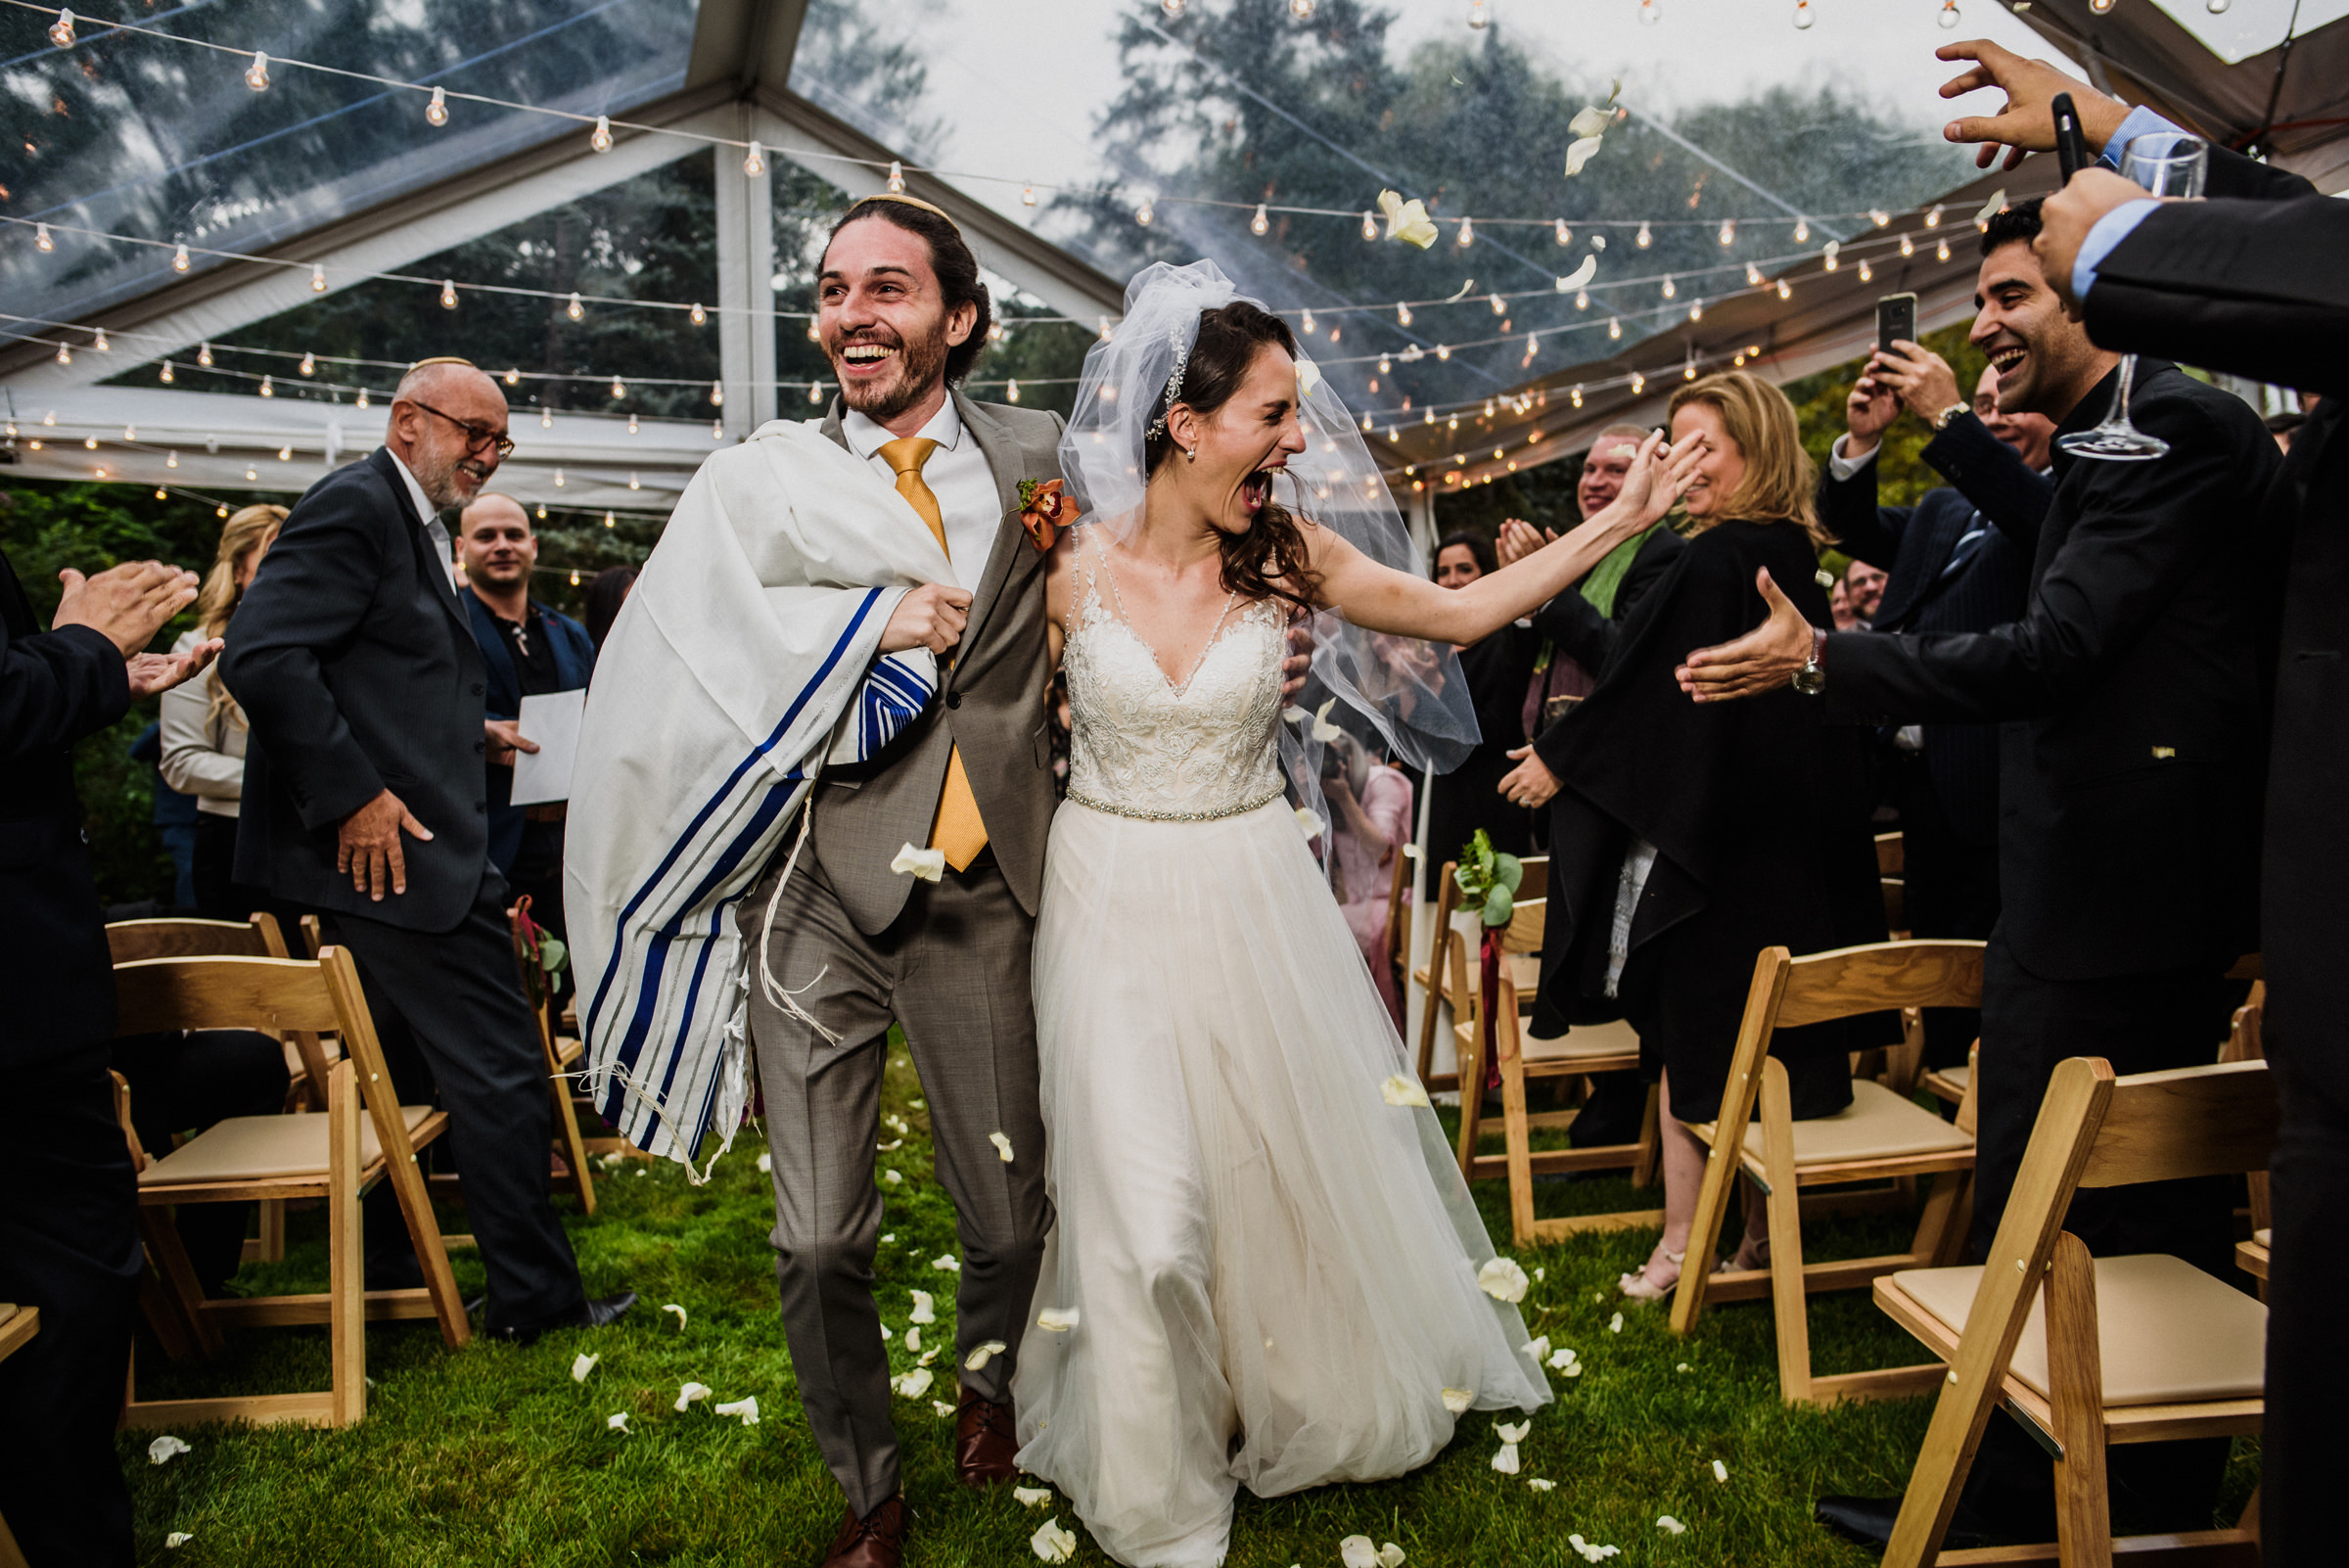 Just married couple slaps hands with guest - photo by El Marco Rojo